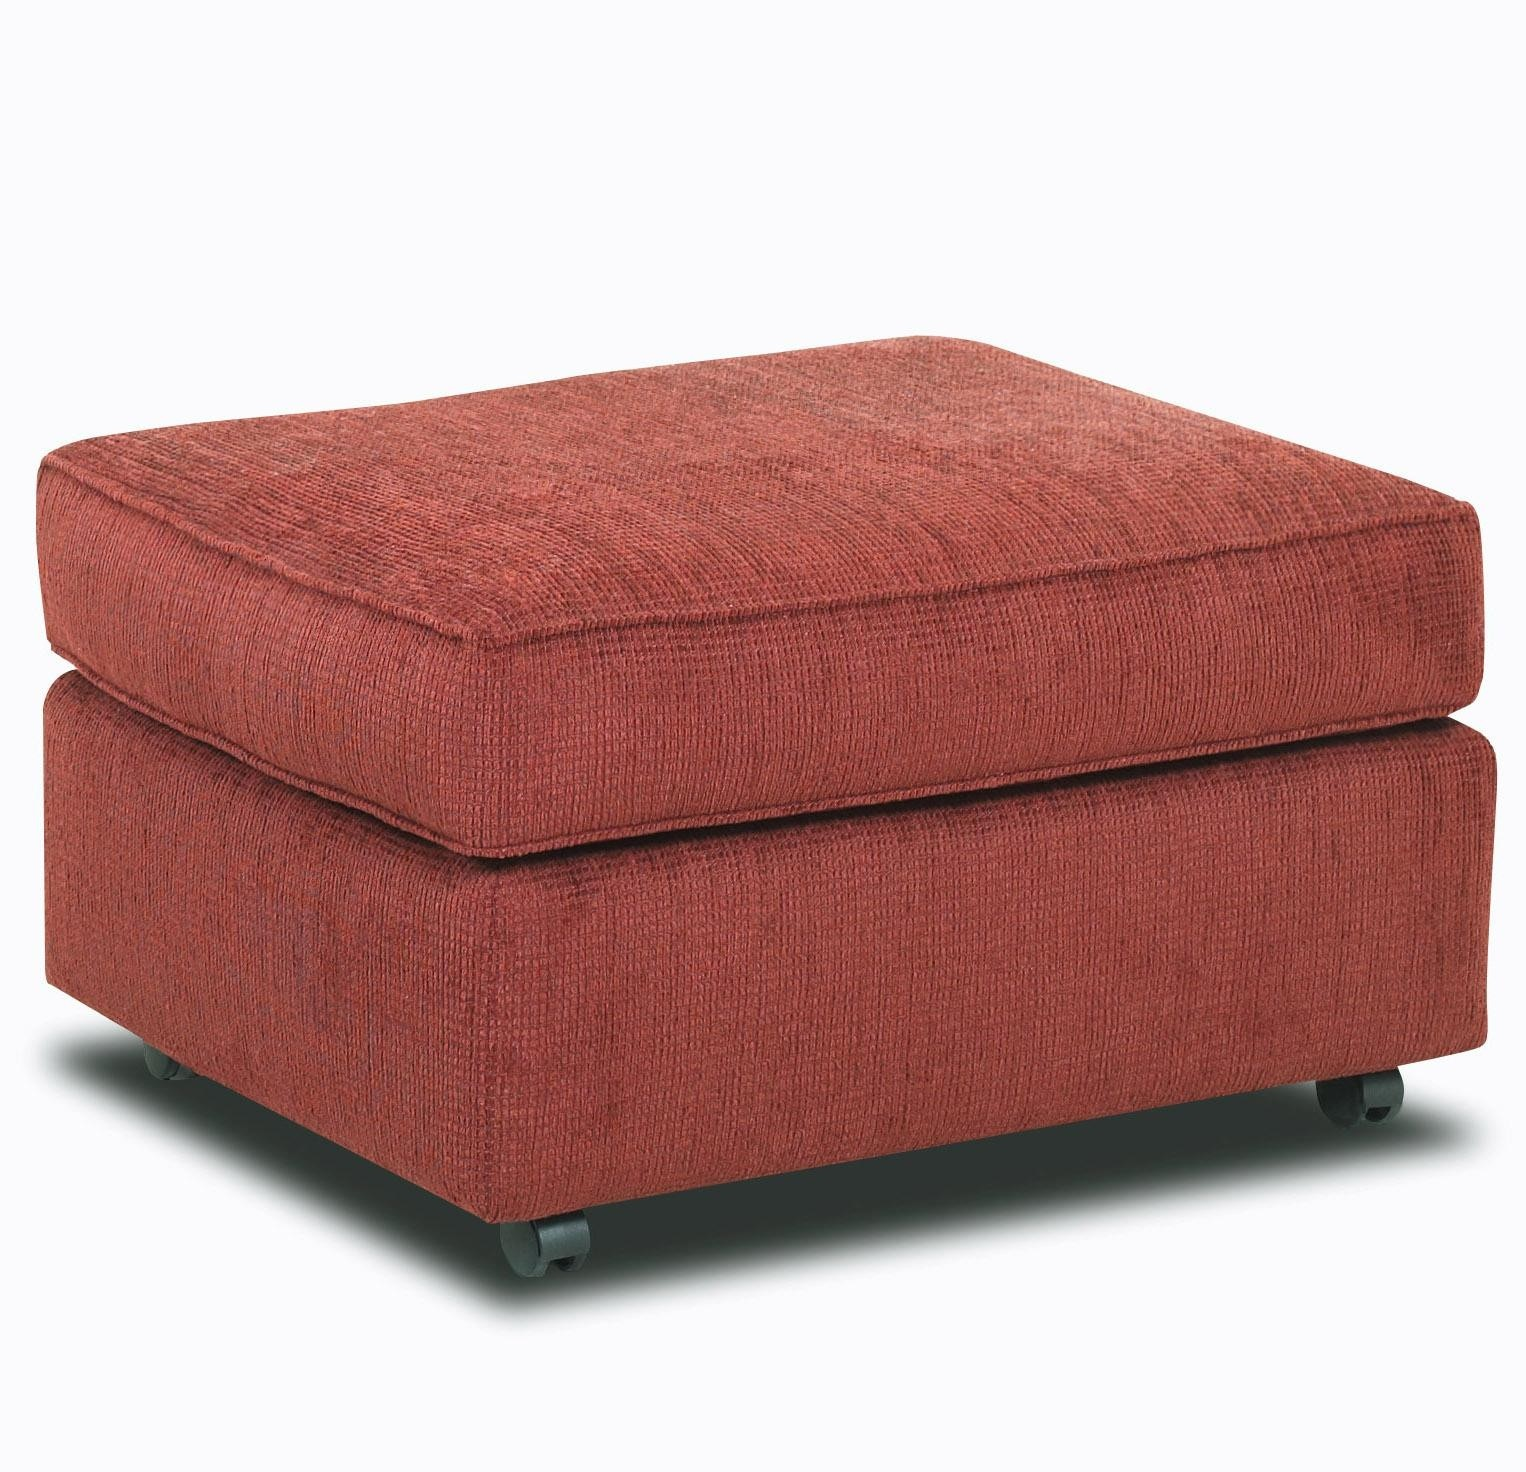 Rolling ottoman with storage  sc 1 st  Foter & Ottomans With Wheels - Foter